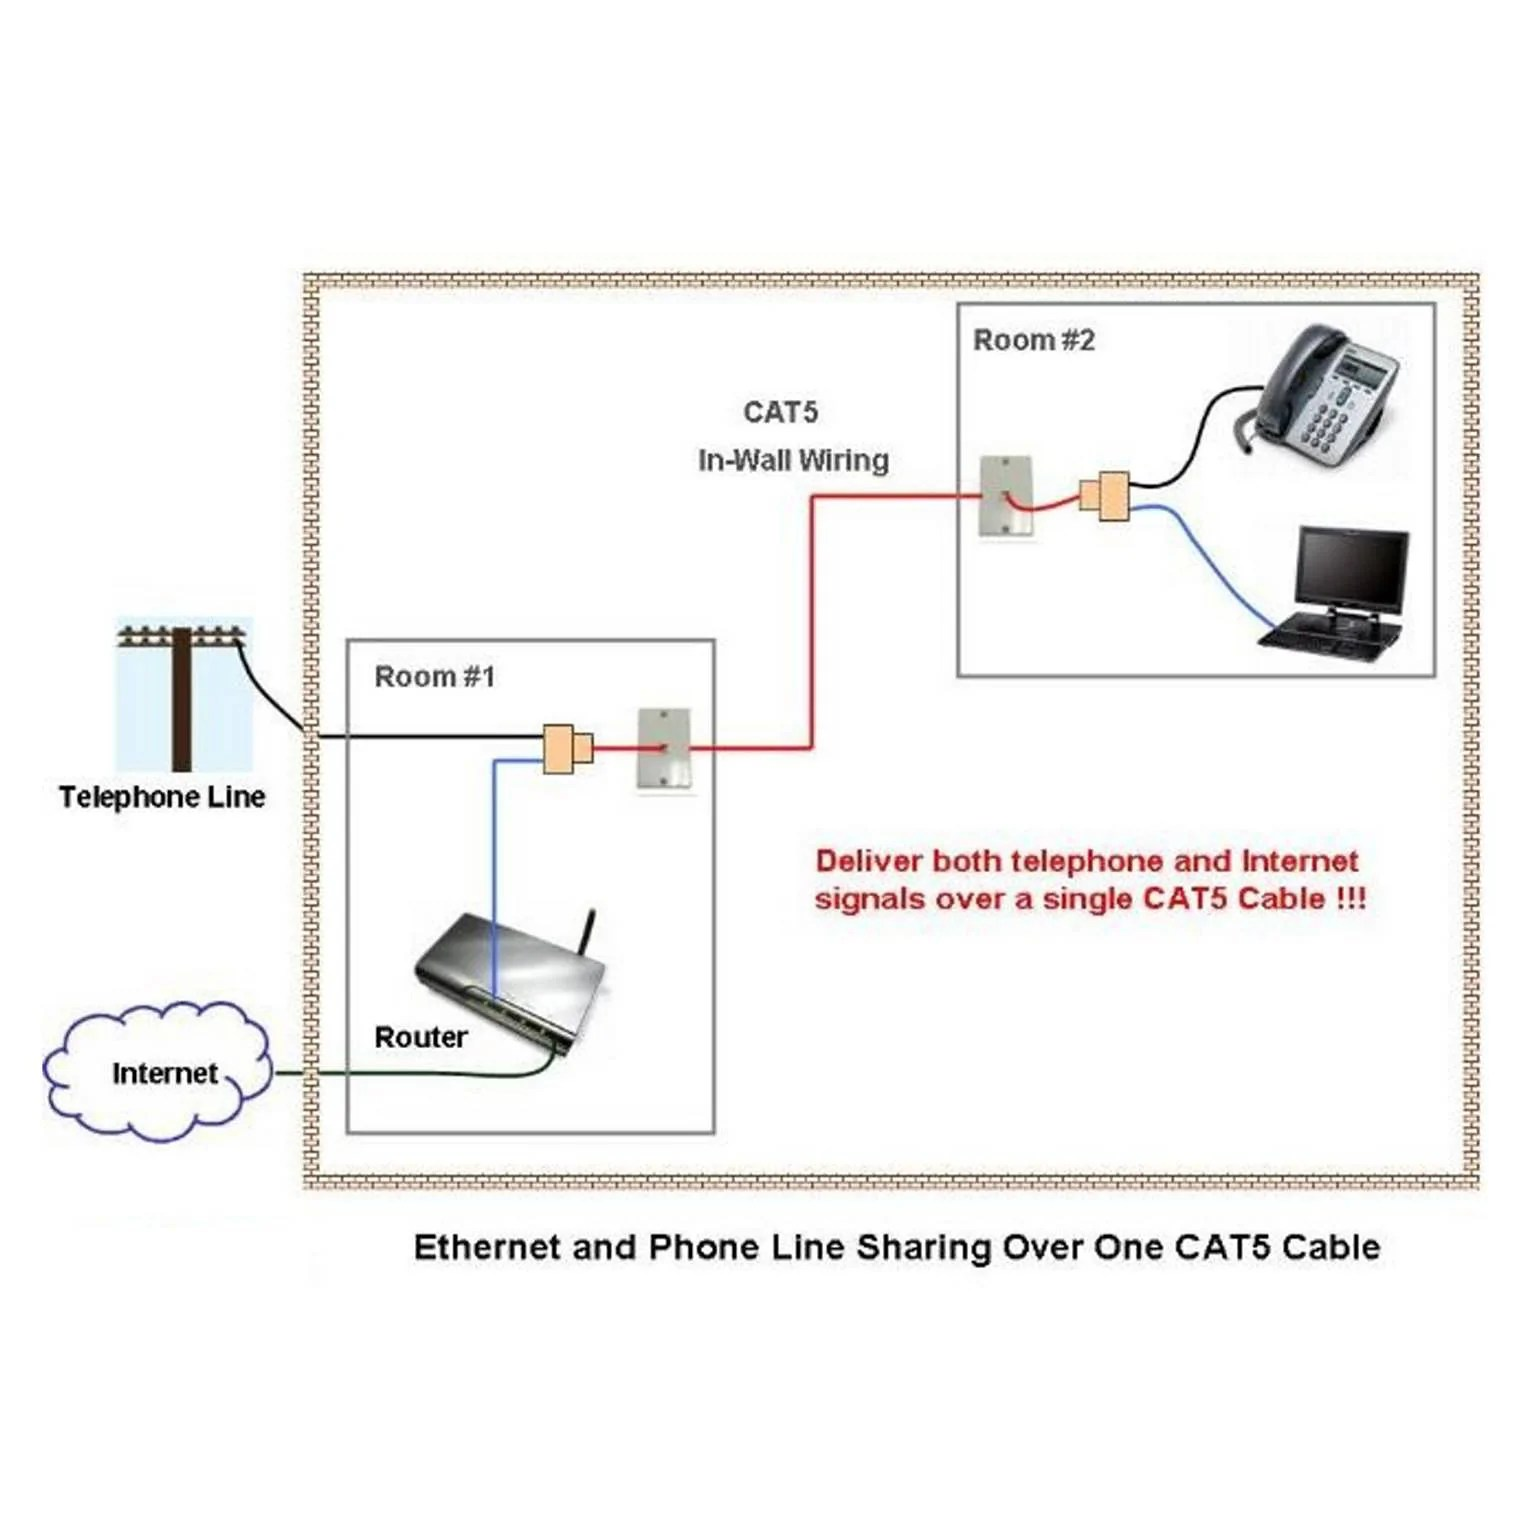 ethernet phone wiring diagram schema wiring diagram wiring how to wire rj45 patch panels for home phone lines darren [ 1536 x 1536 Pixel ]